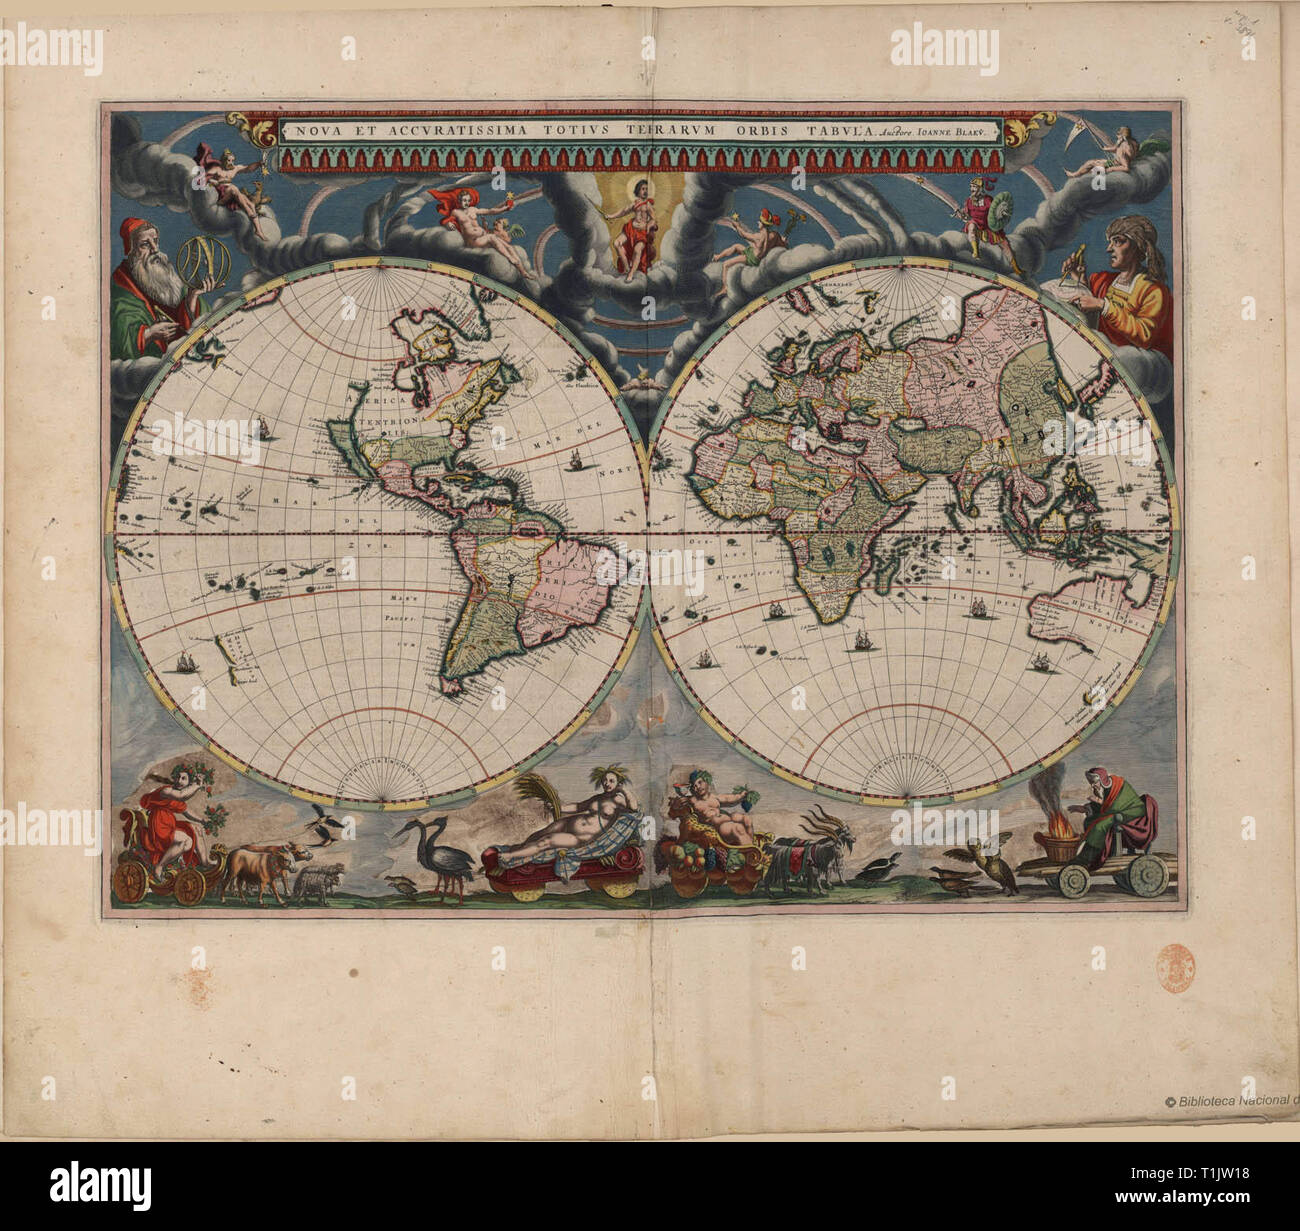 Blaeu's Atlas Maior (1662–1672), a monumental multi-volume world atlas from the Golden Age of Dutch/Netherlandish cartography (c. 1570s–1670s) and a widely recognized masterpiece in the history of mapmaking. Willem Blaeu and his son Joan Blaeu were both official cartographers to the VOC. - Stock Image